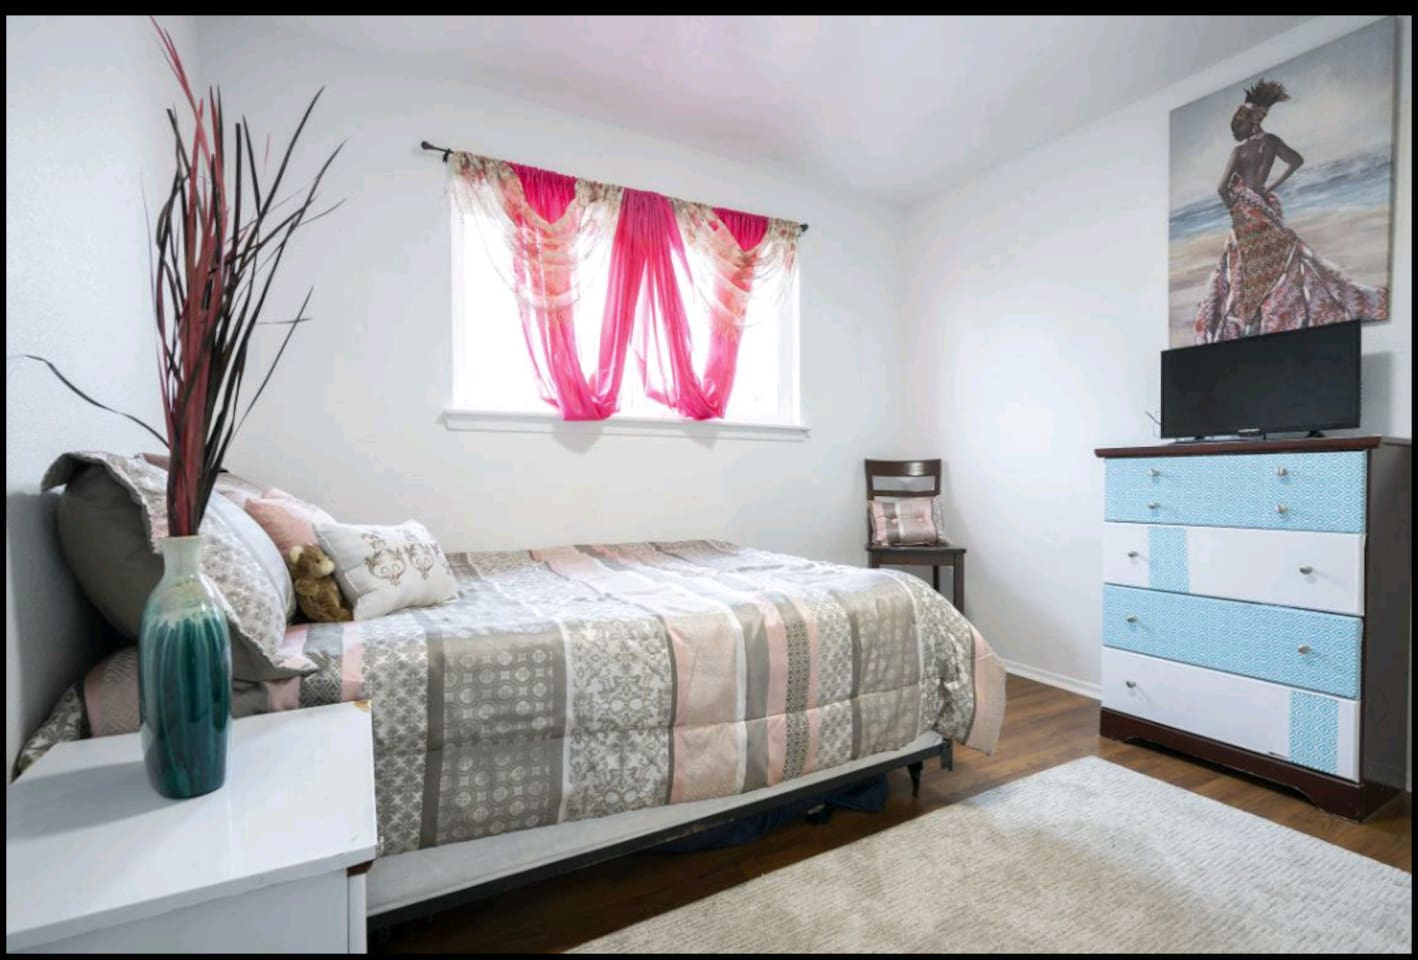 Private Guest Bedroom with full-sized bed, night stand, chair, rug, smart TV & tall dresser.